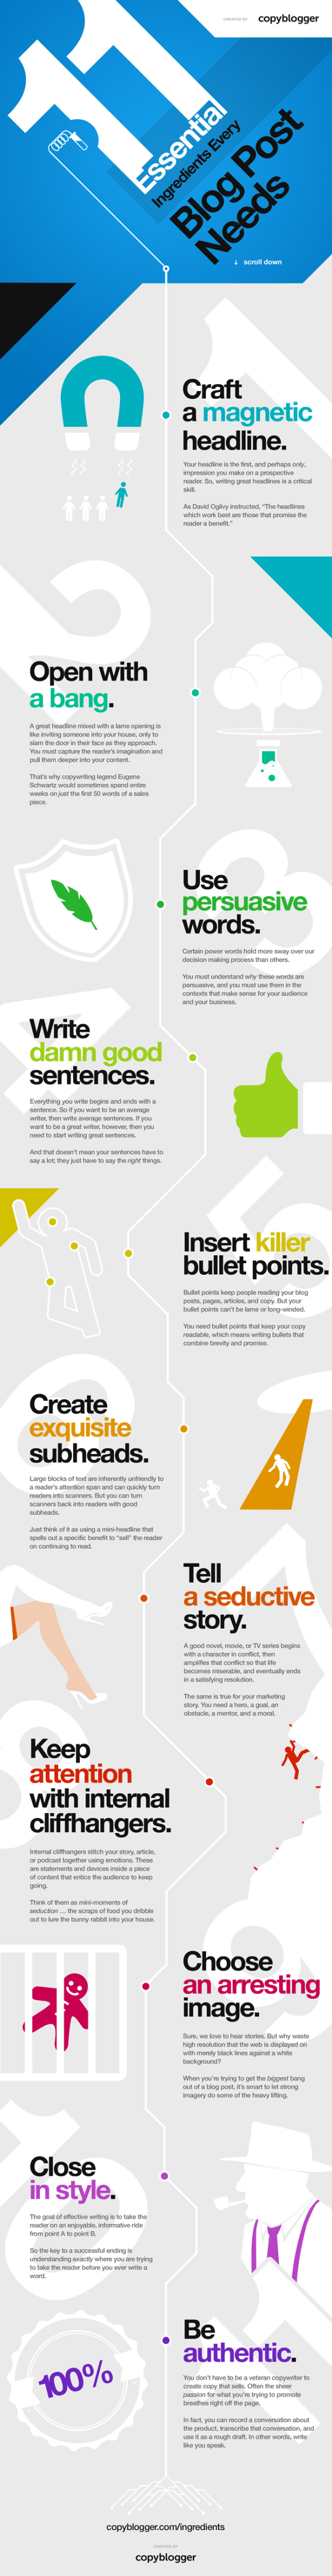 essential blog post ingredients infographic resized 600